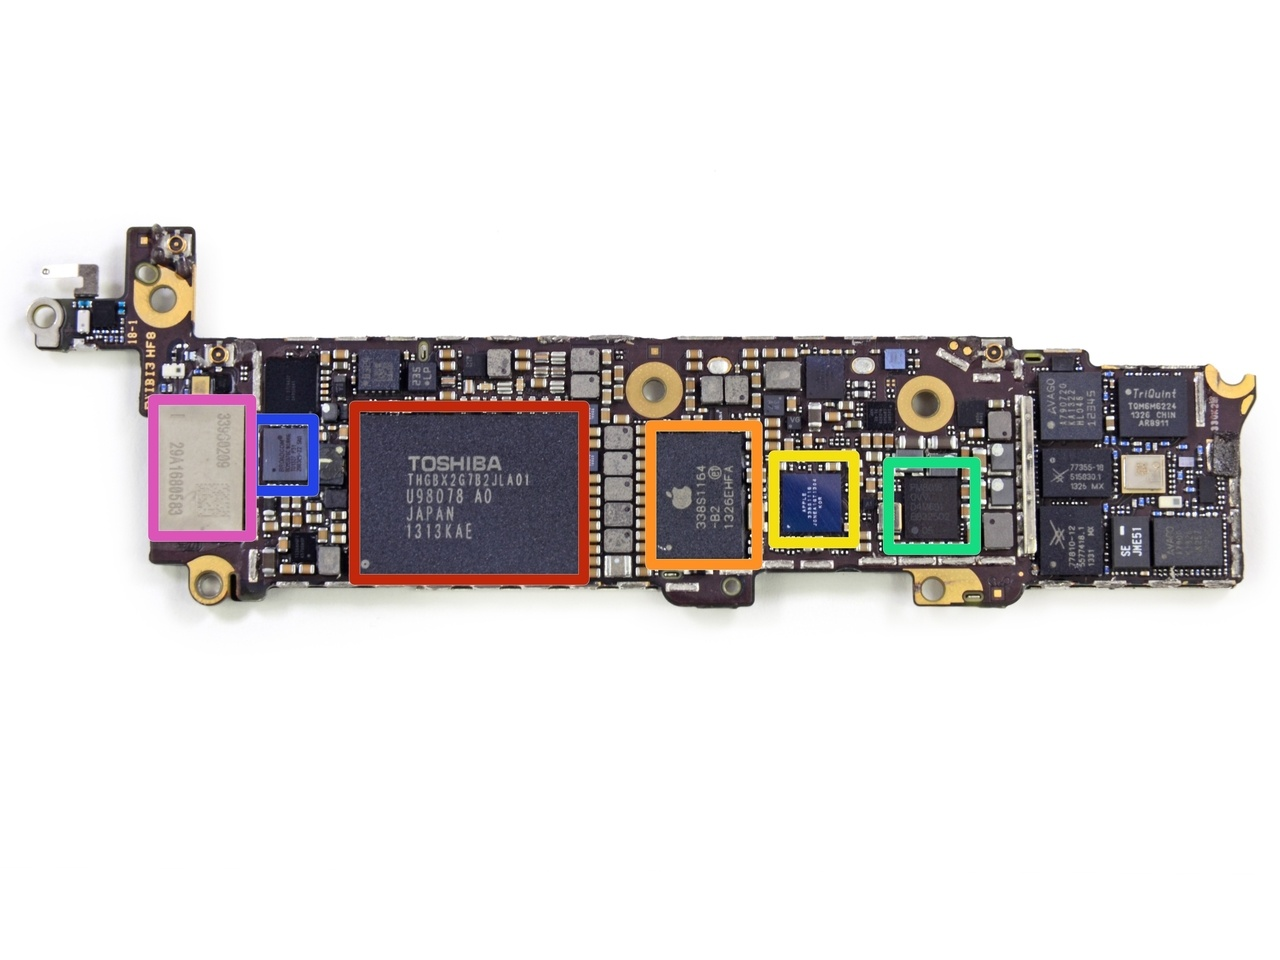 Professor Hacks iPhone NAND Chip of iPhone 5C to Gain Access